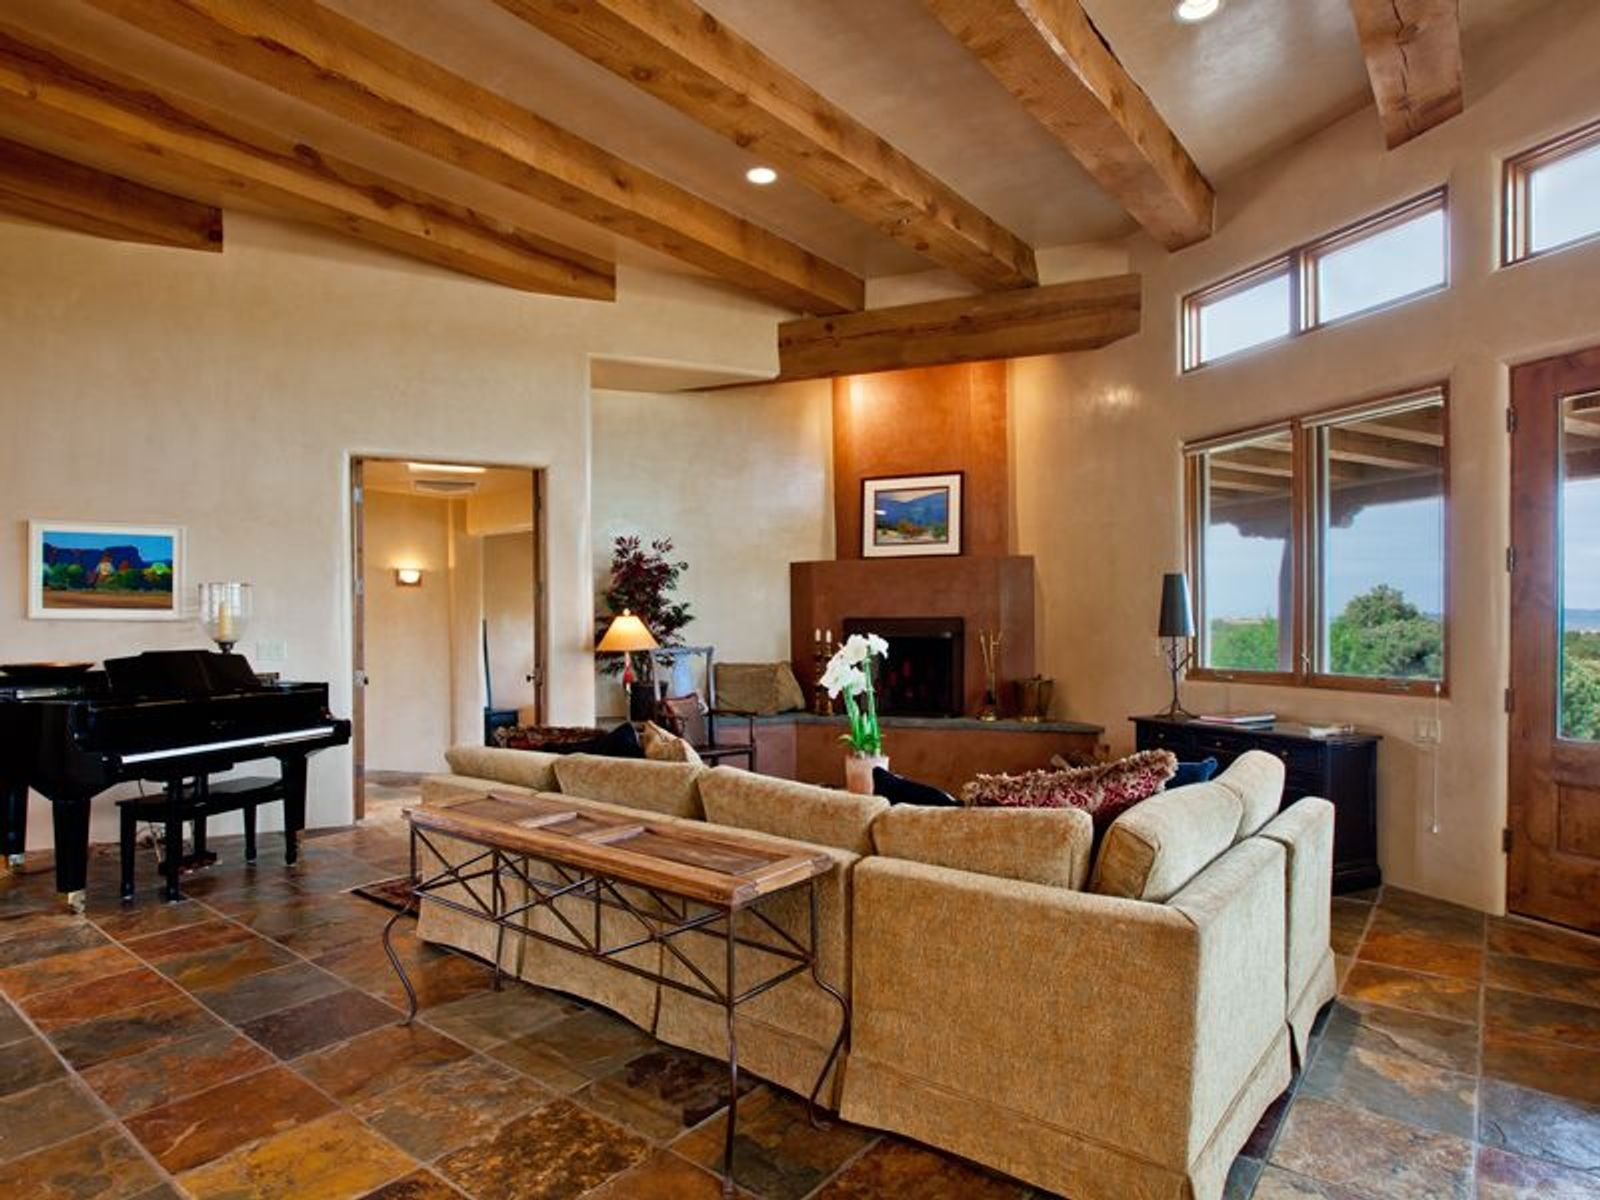 90 Sundance Drive, Santa Fe NM Single Family Home - Santa Fe Real Estate